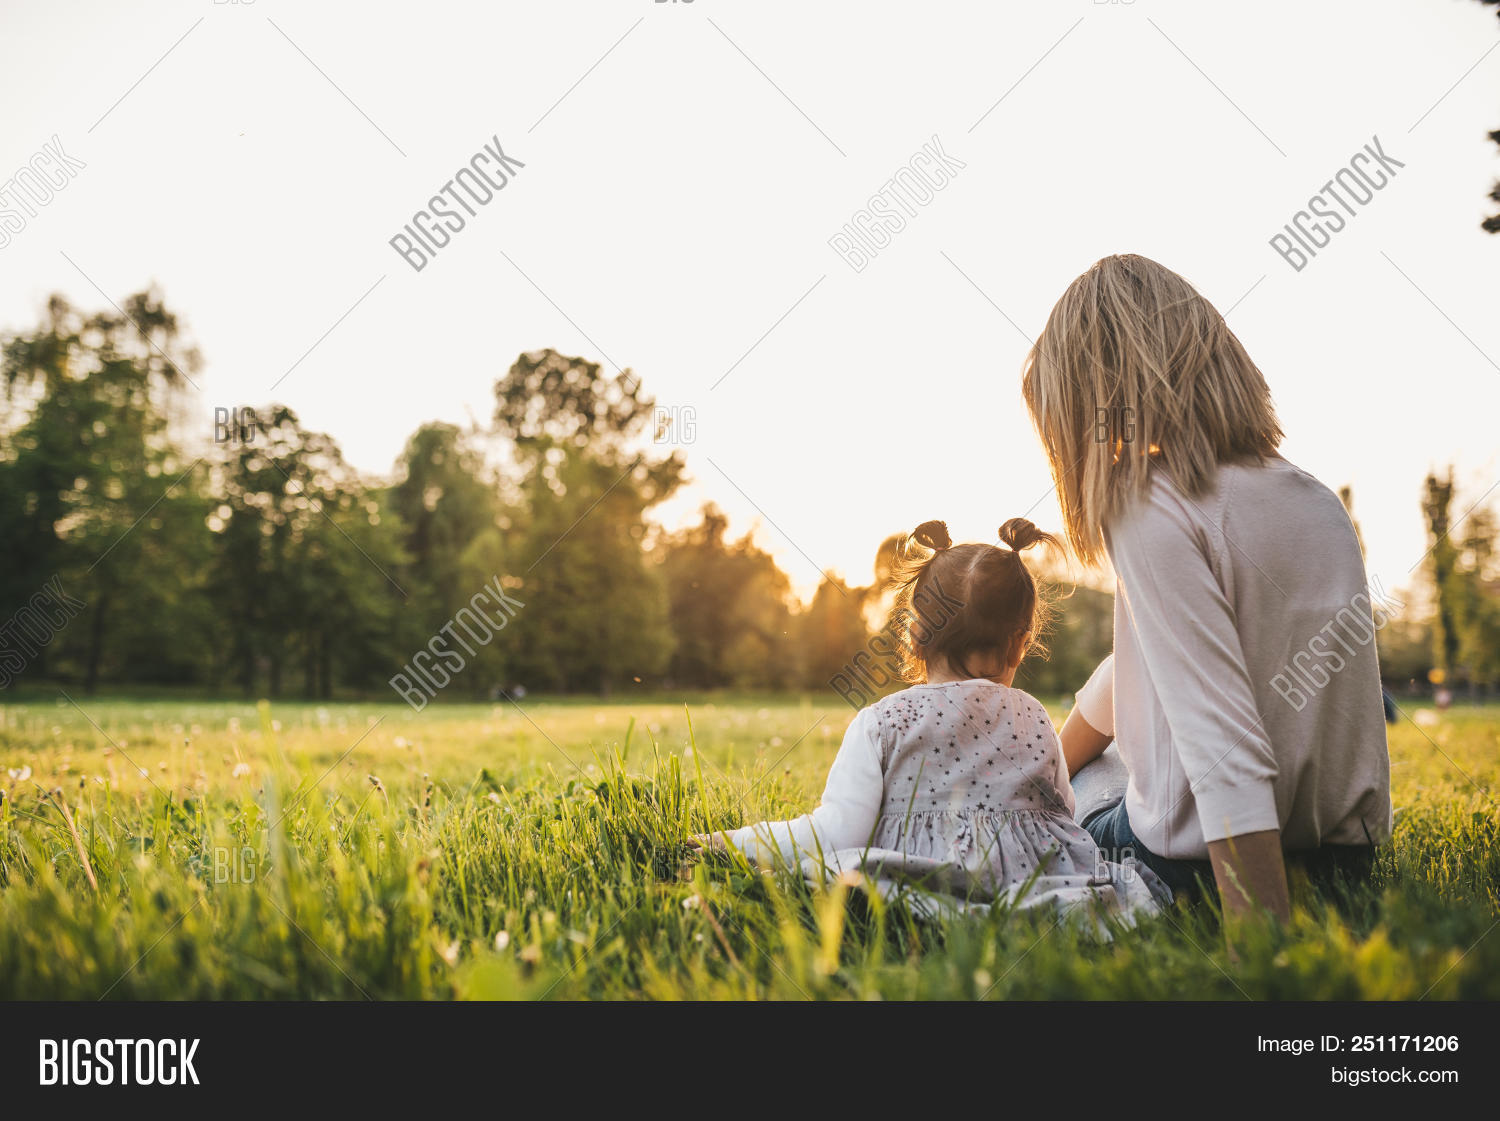 baby,beautiful,caucasian,cheerful,child,childhood,cute,daughter,day,education,embrace,emotion,enjoy,family,female,fun,girl,happiness,happy,healthy,joy,kid,laughing,leisure,life,lifestyle,little,love,mom,mother,motherhood,nature,outdoor,outside,parent,parenting,park,people,playing,portrait,preschool,relationship,season,smile,spring,summer,sunset,together,woman,young